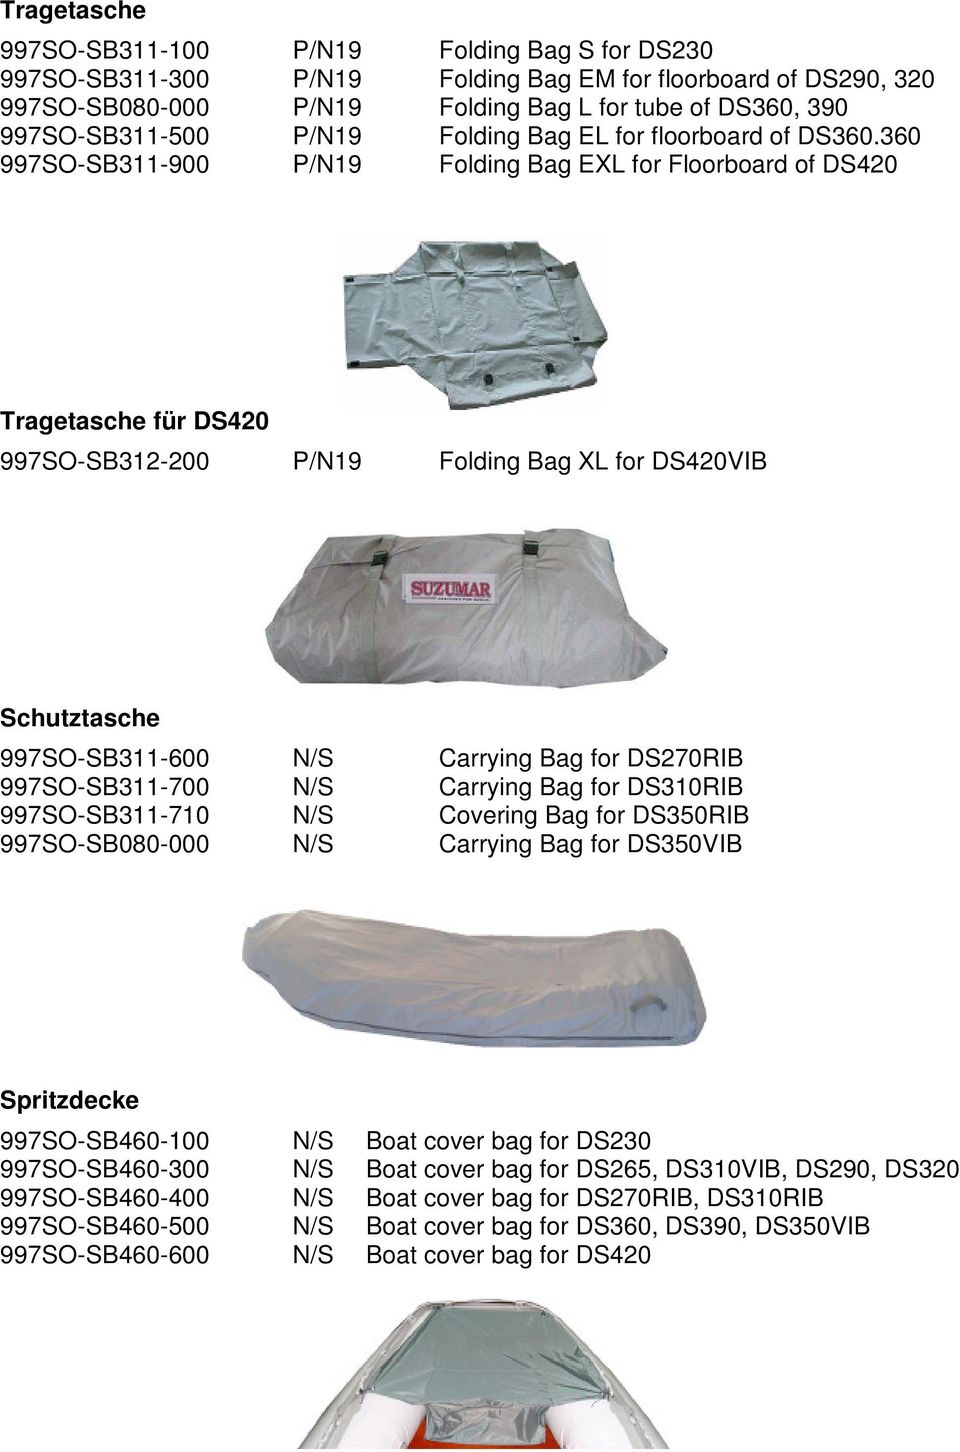 360 997SO-SB311-900 P/N19 Folding Bag EXL for Floorboard of DS420 Tragetasche für DS420 997SO-SB312-200 P/N19 Folding Bag XL for DS420VIB Schutztasche 997SO-SB311-600 N/S Carrying Bag for DS270RIB